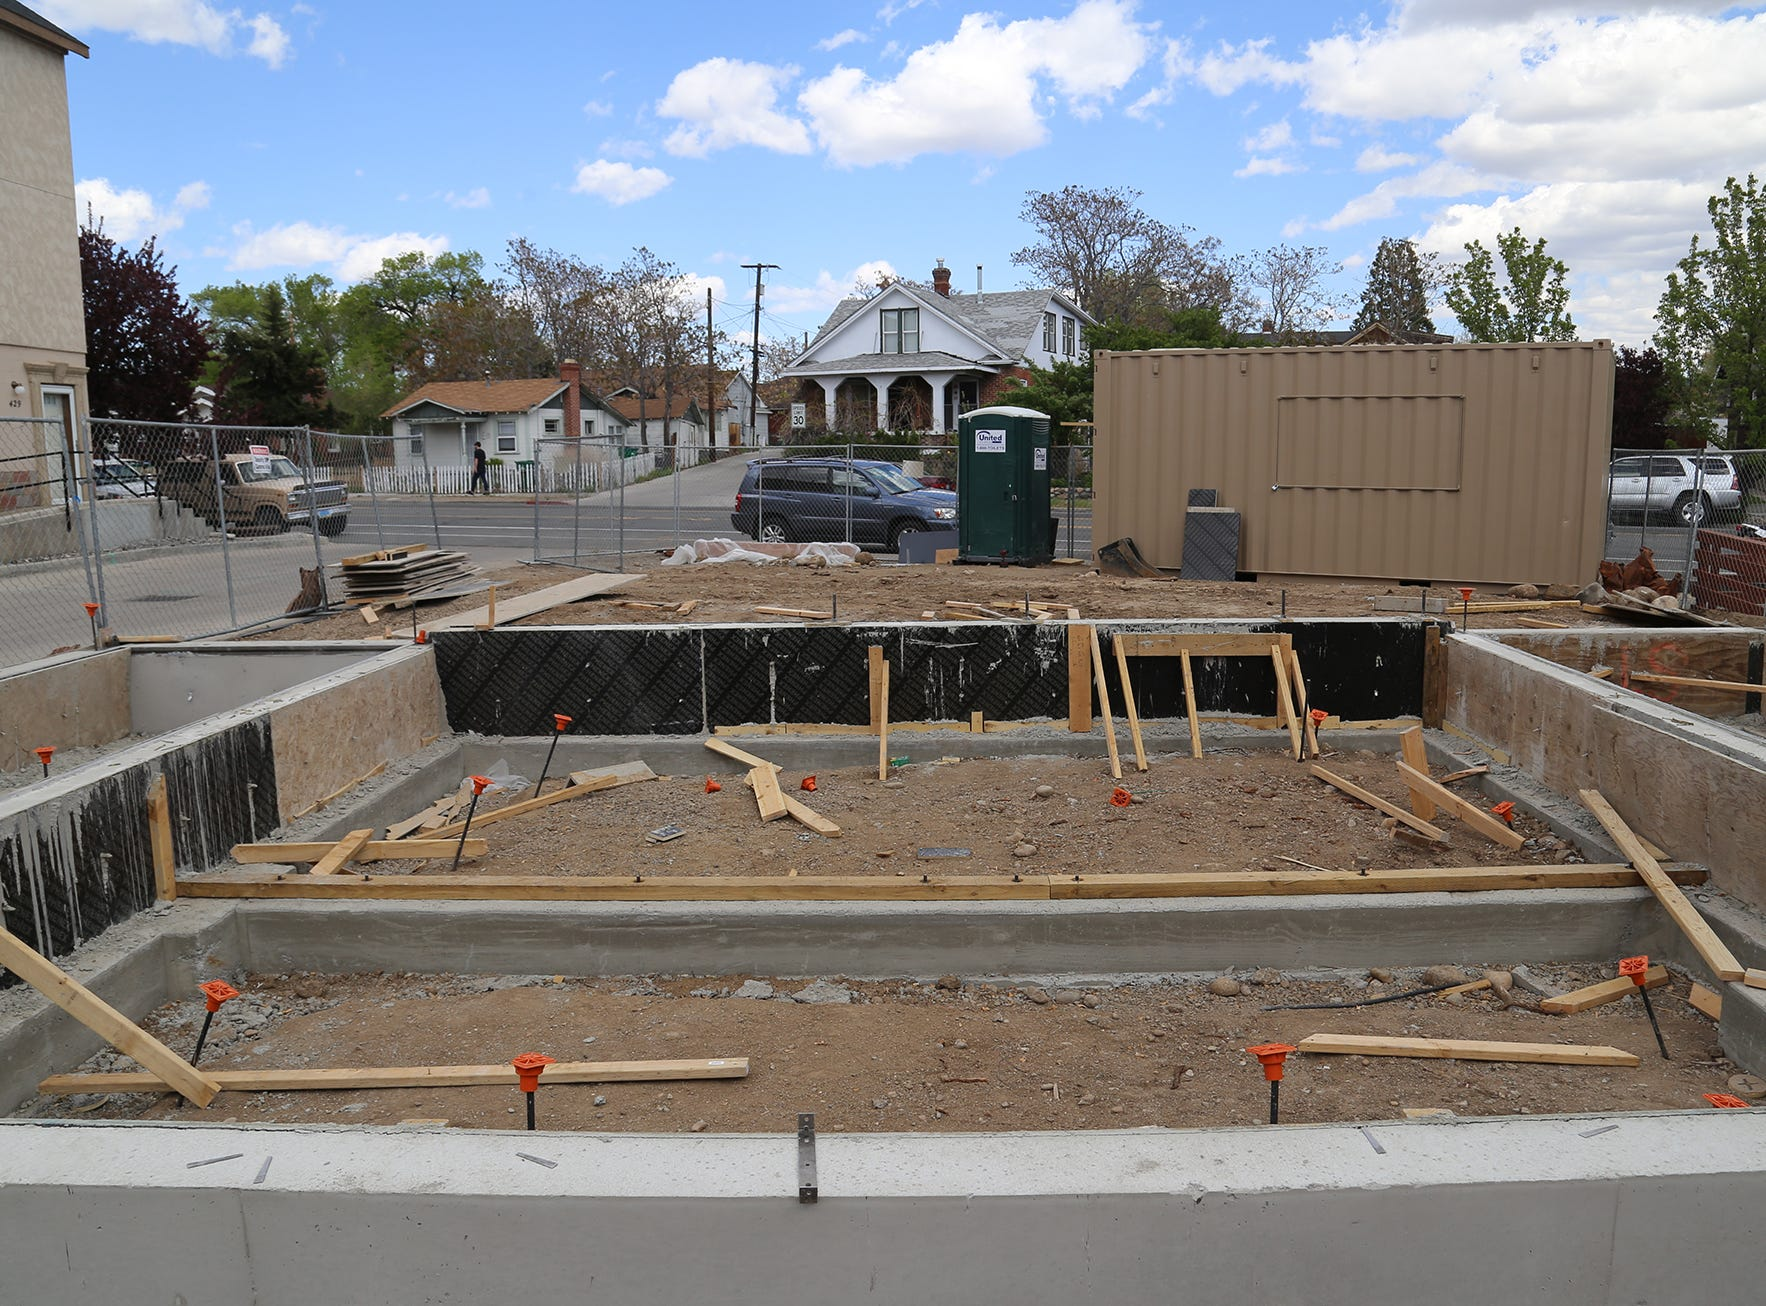 The site for a new shipping container apartment project at Midtown Reno on Holcomb Avenue and Moran Street on April 29, 2019.